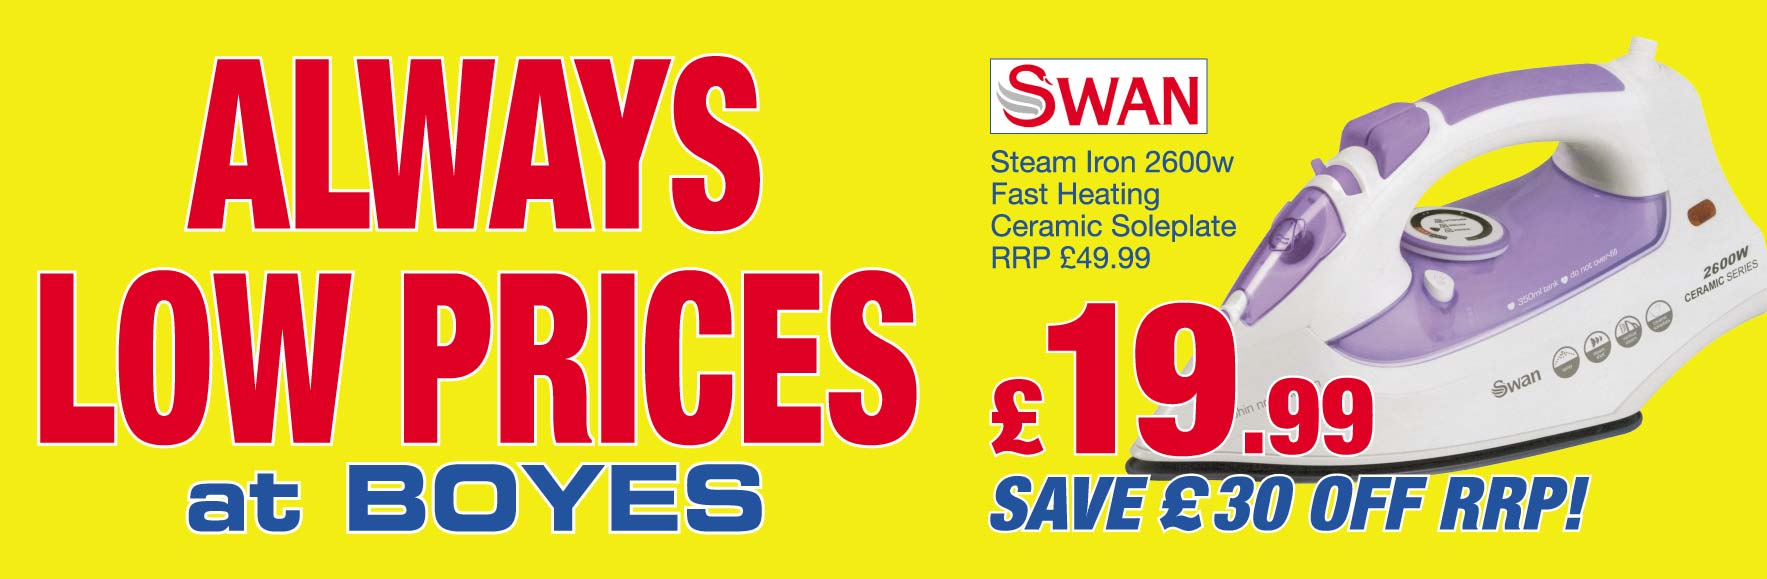 Swan Steam Iron RRP £49.99. Only £19.99